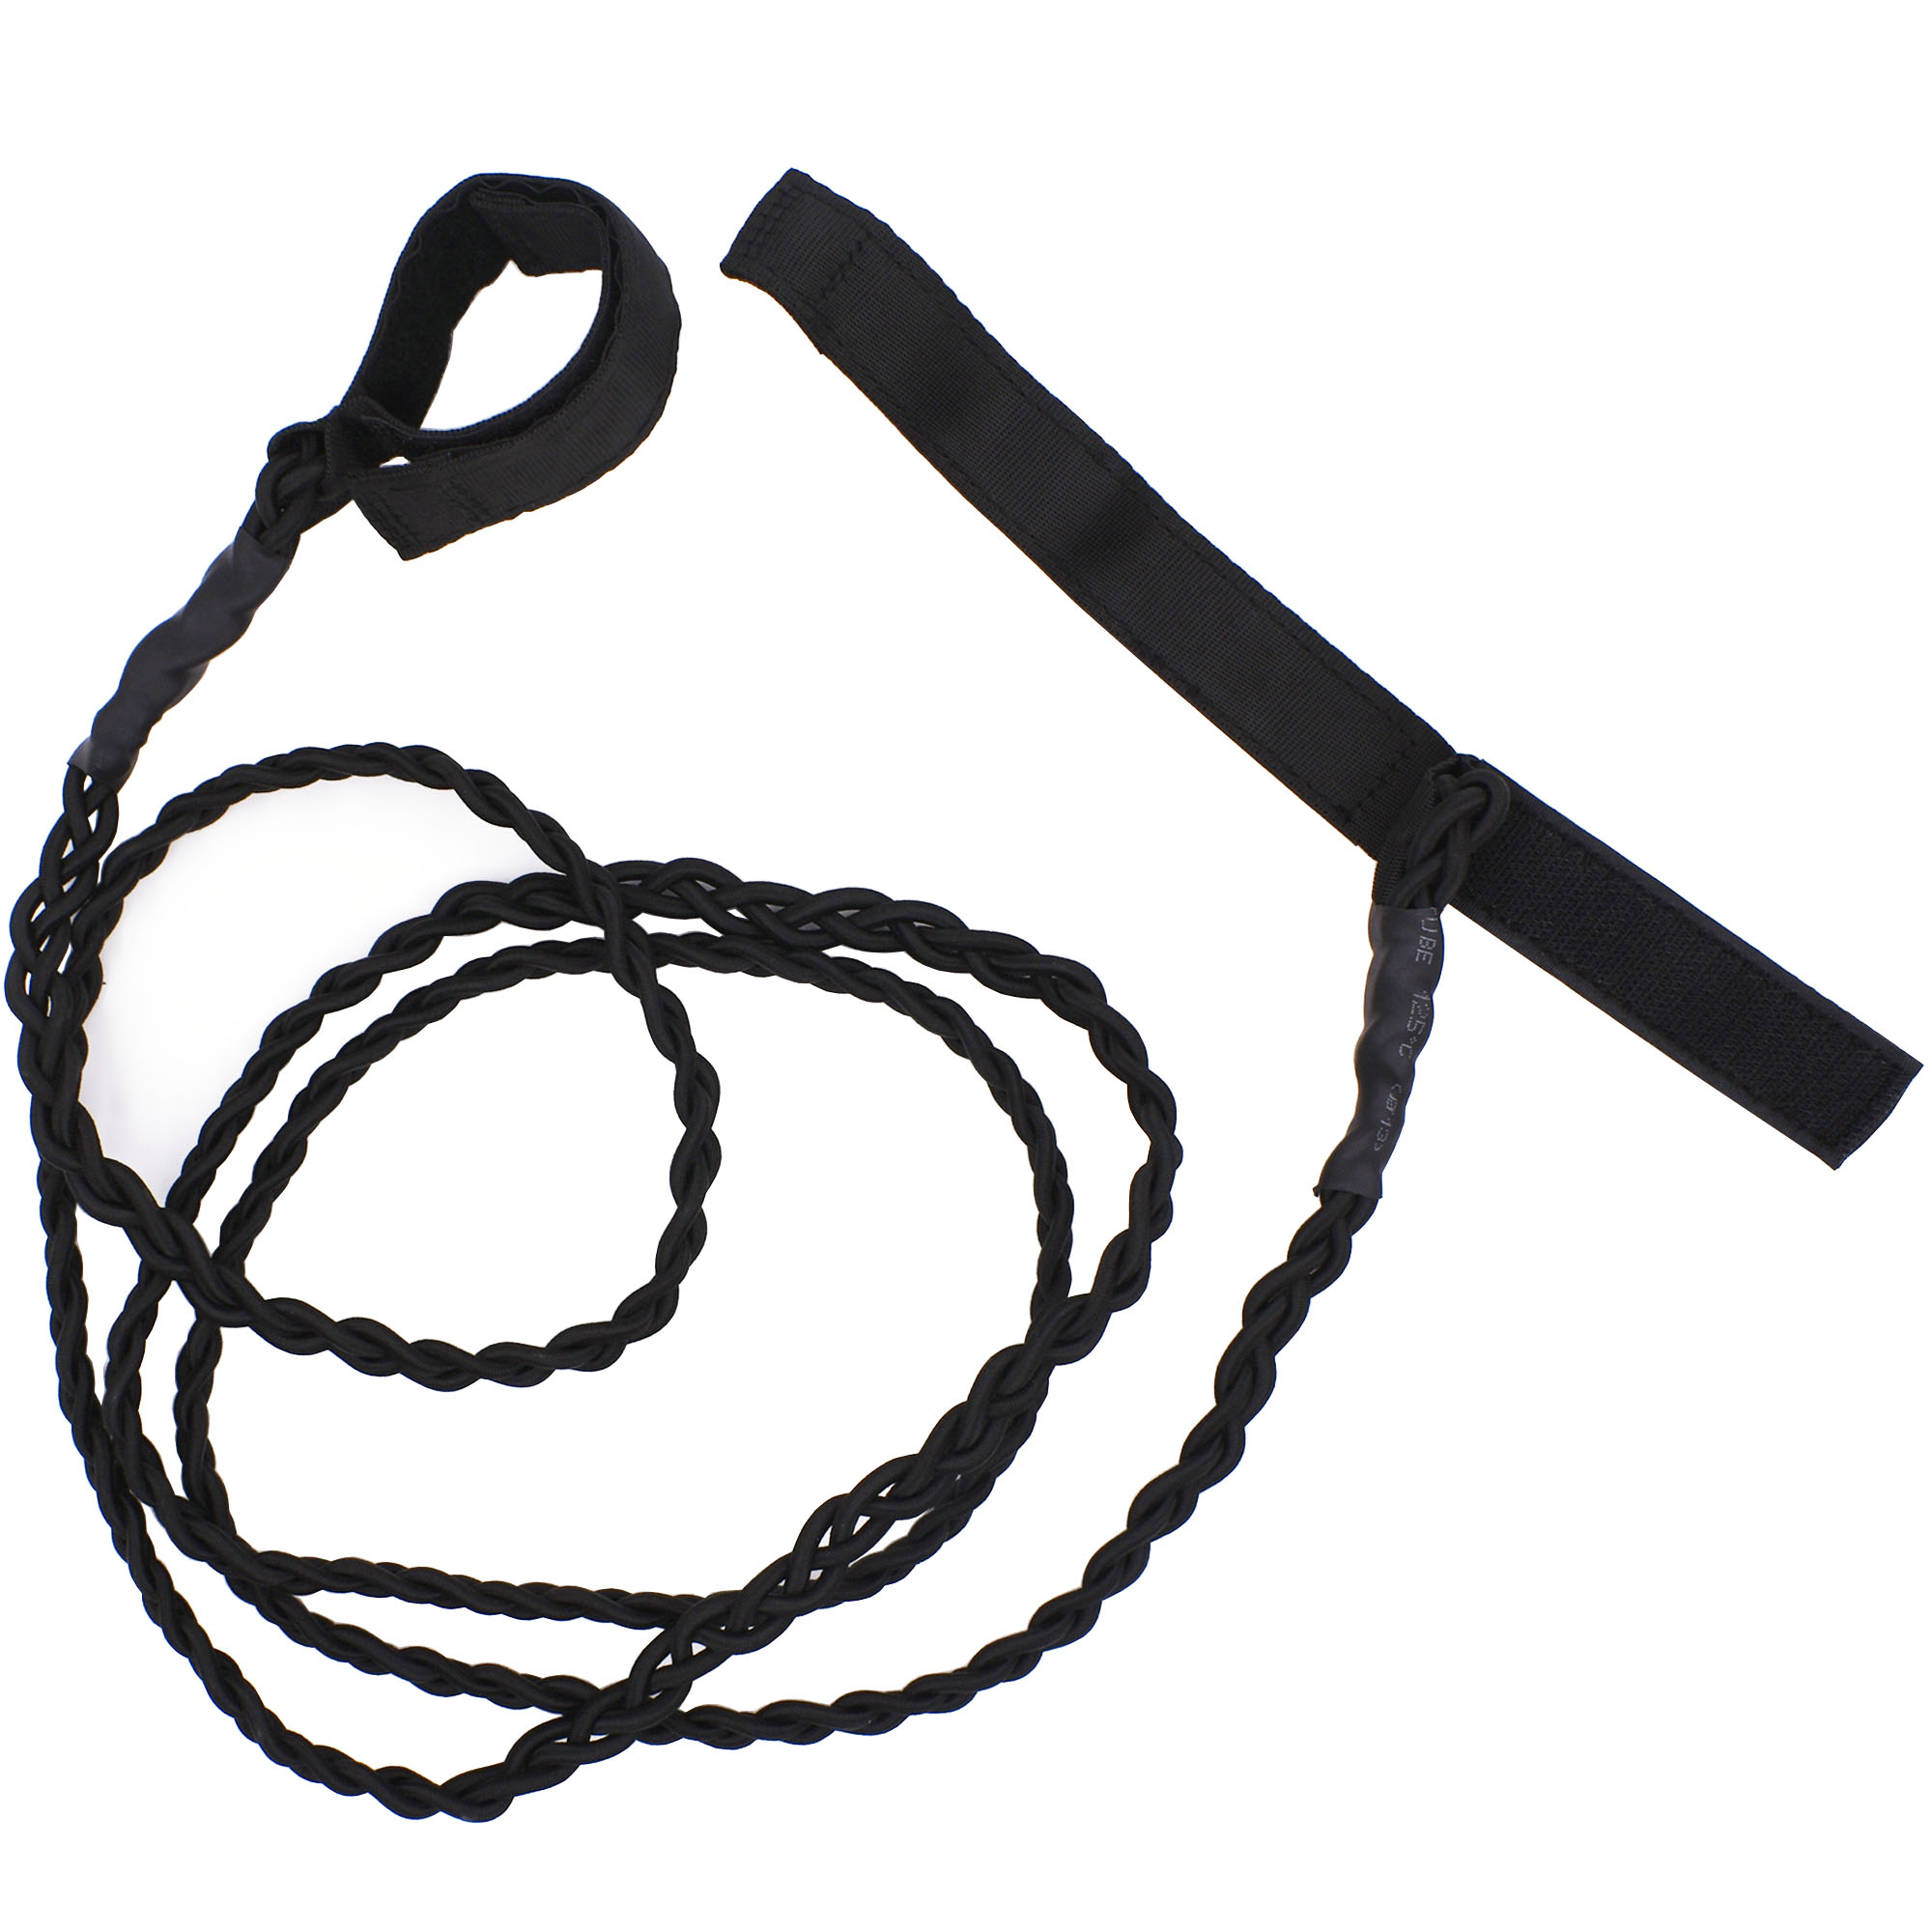 YYST Tri-Corded Travel Clothesline For Hotel Travel, Camping + Laundry Room, No Pins Needed